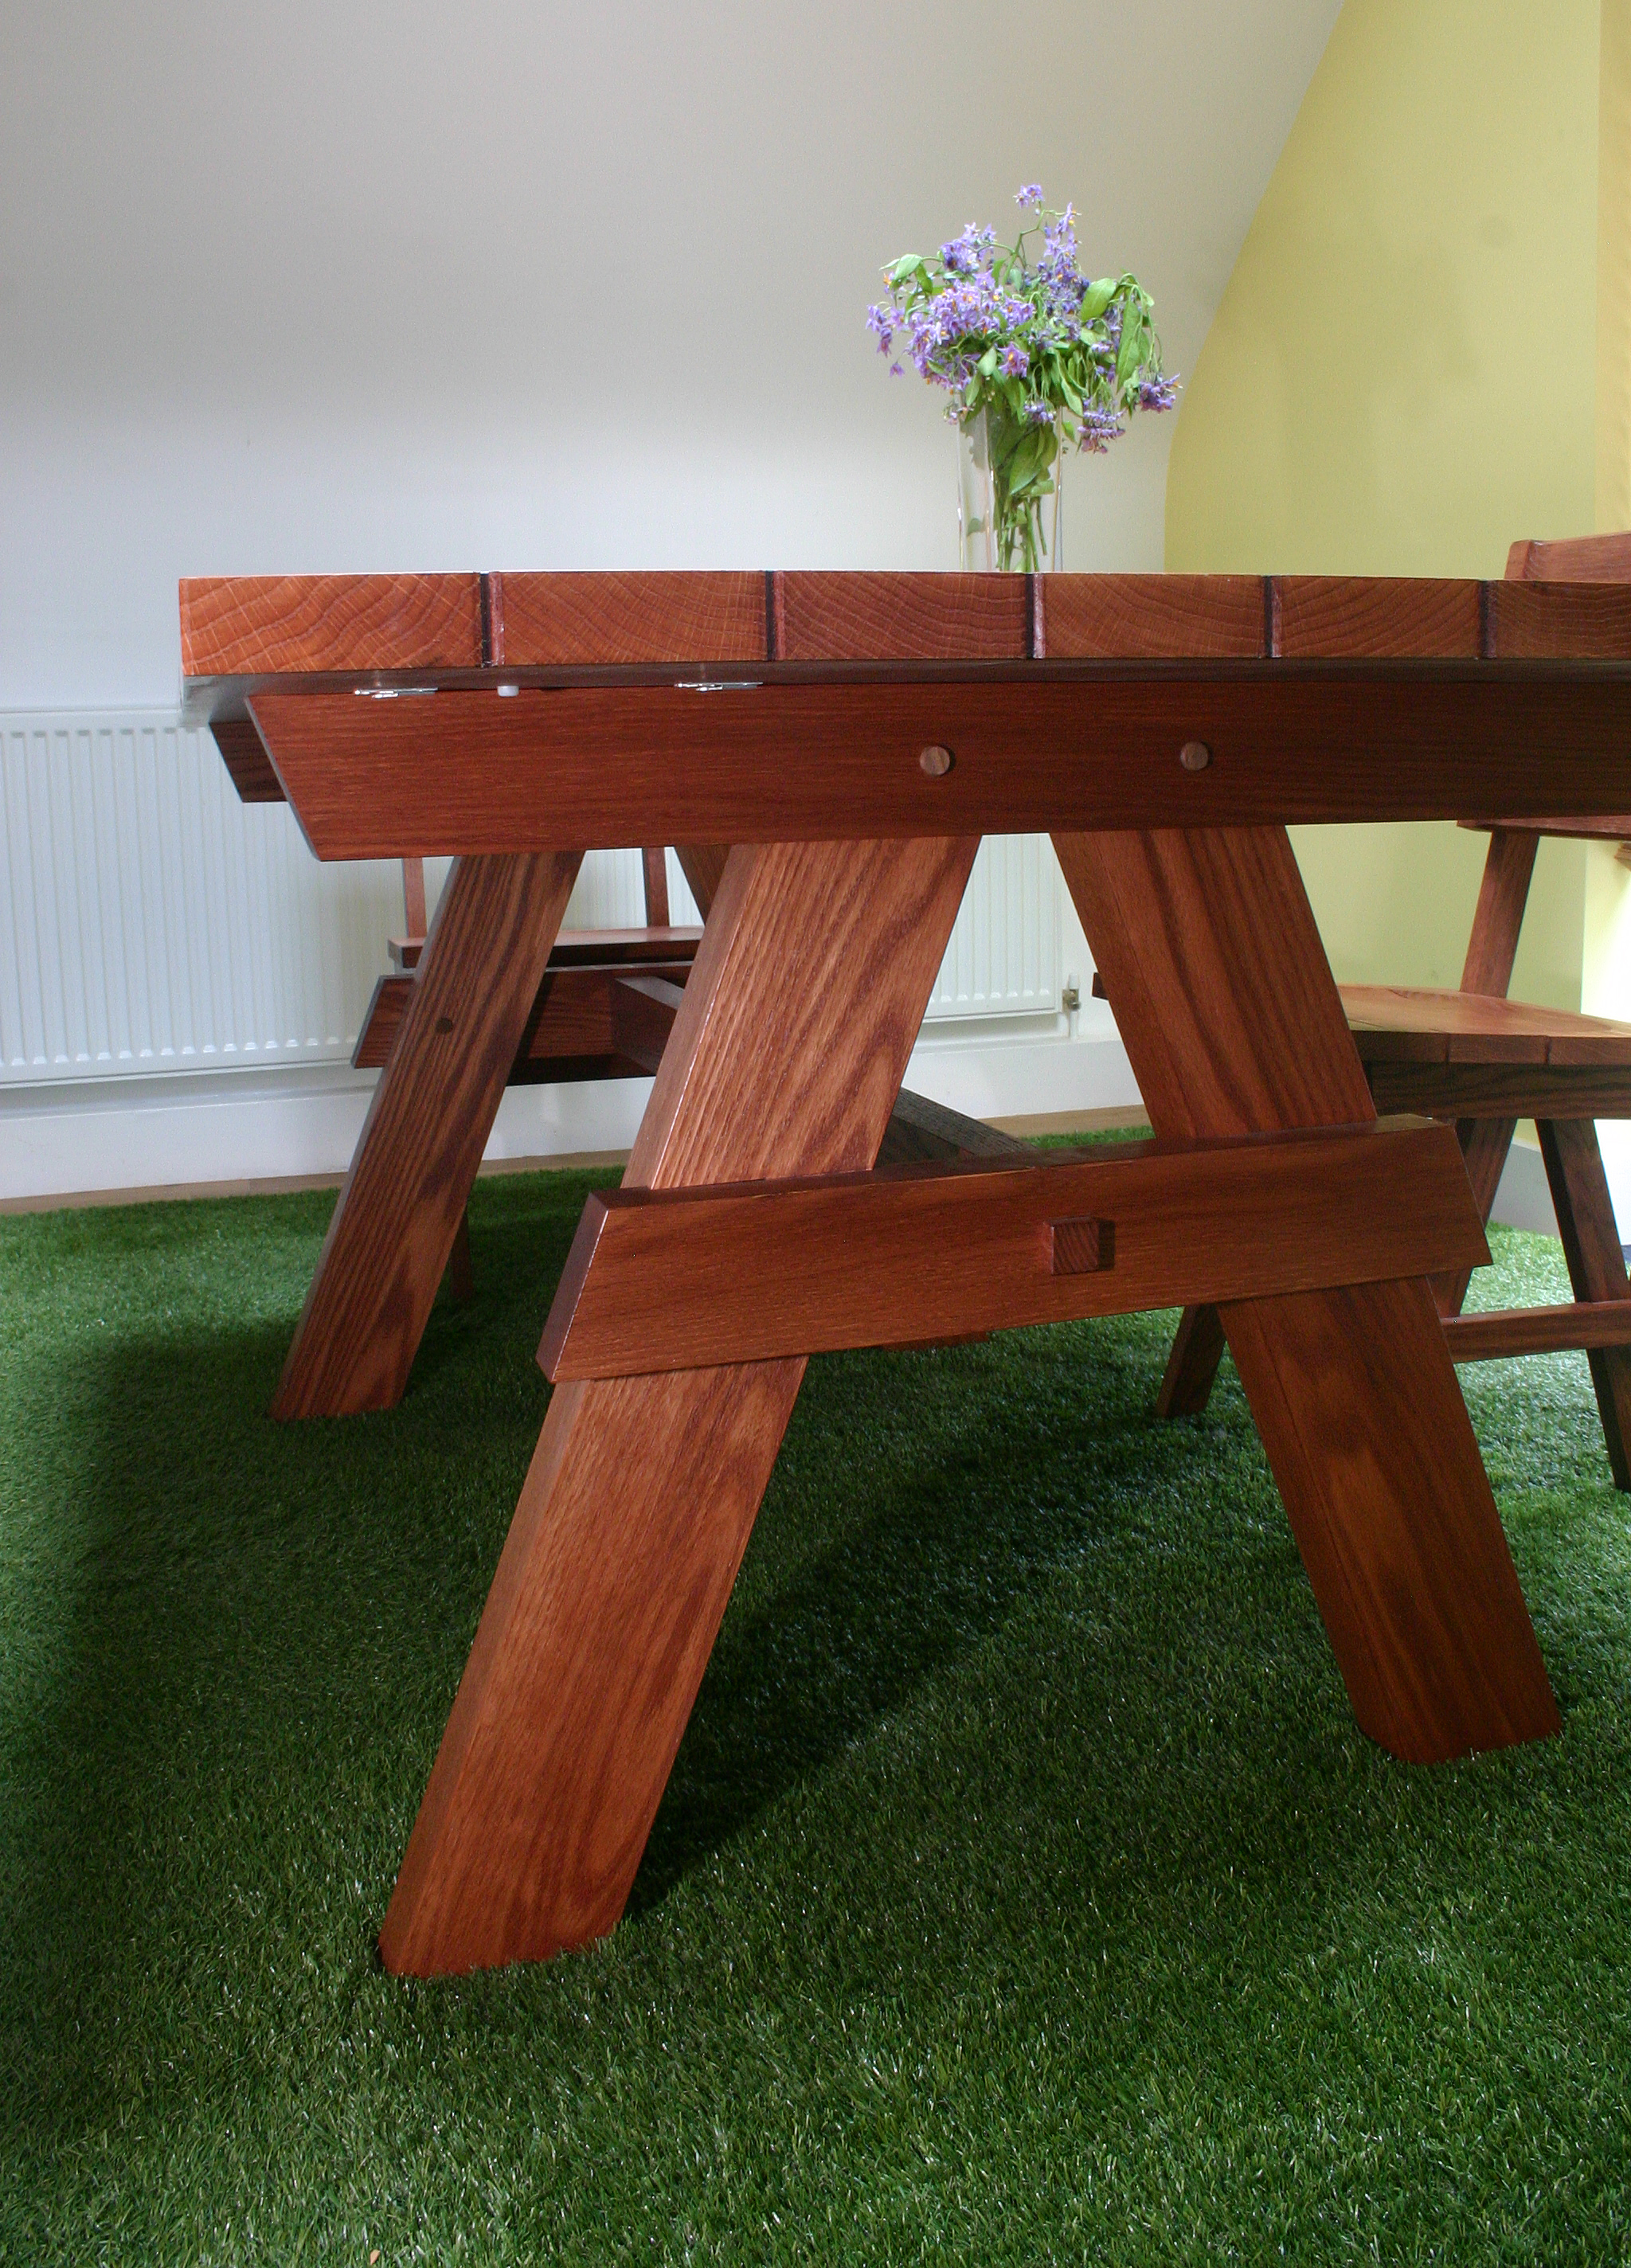 Picnic table and chairs (14).JPG